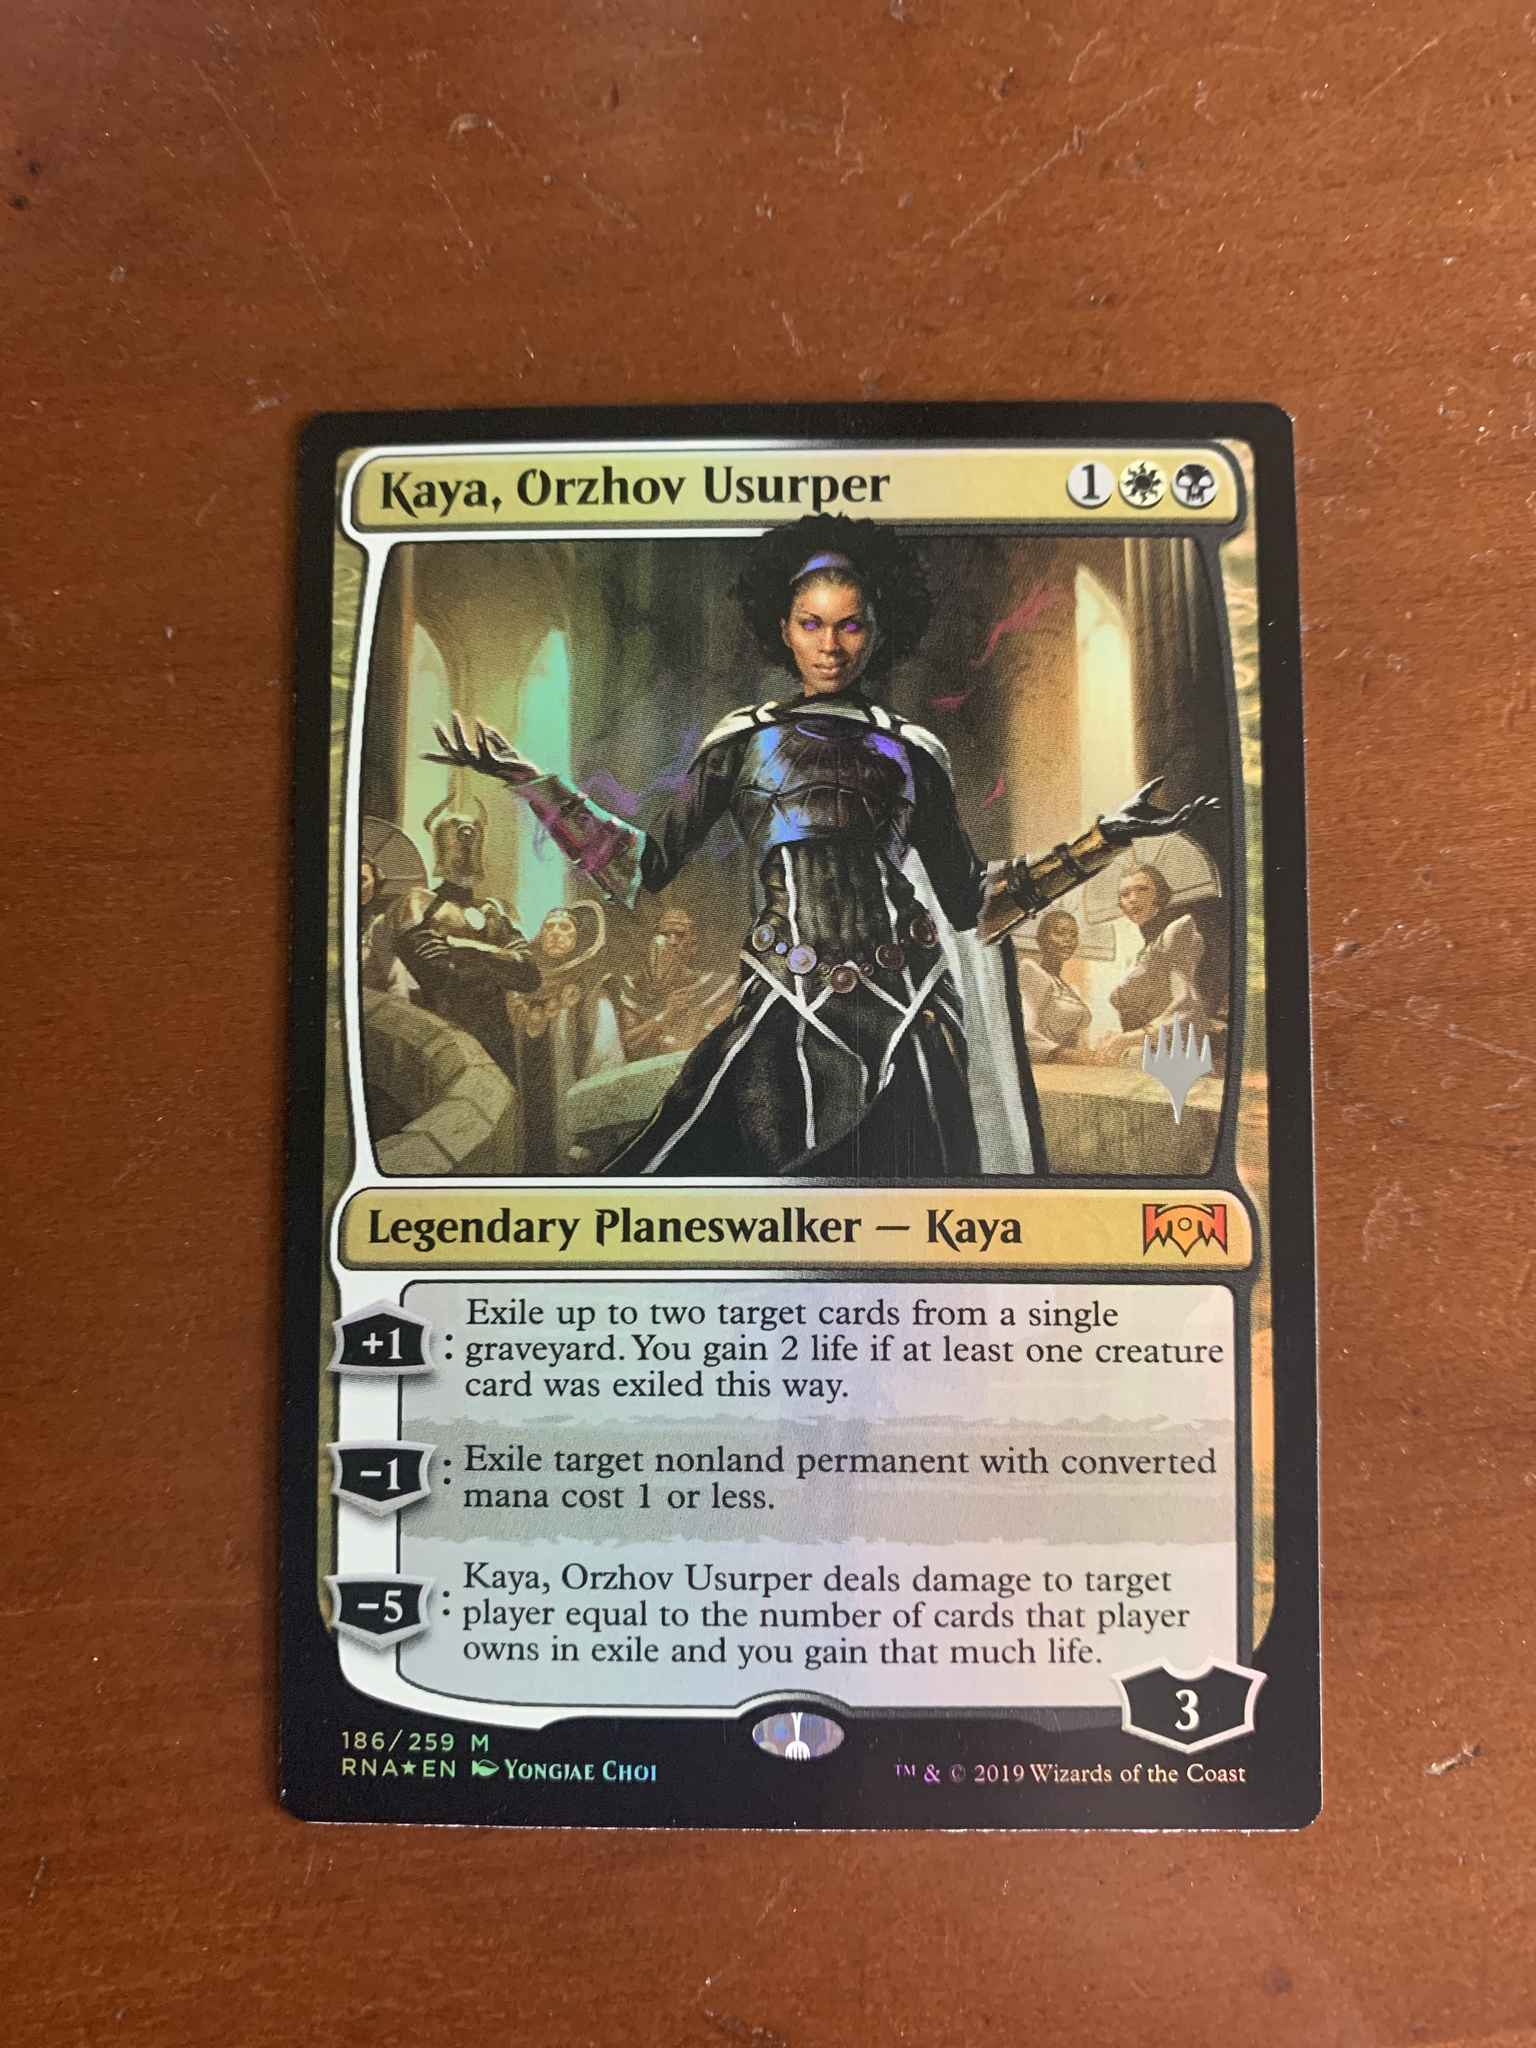 Kaya Orzhov Usurper Kaya Orzhov Usurper Promo Pack Throne Of Eldraine Magic The Gathering Online Gaming Store For Cards Miniatures Singles Packs Booster Boxes Detailed information about mechanics, colors, visual mana curve of the deck. tcgplayer com